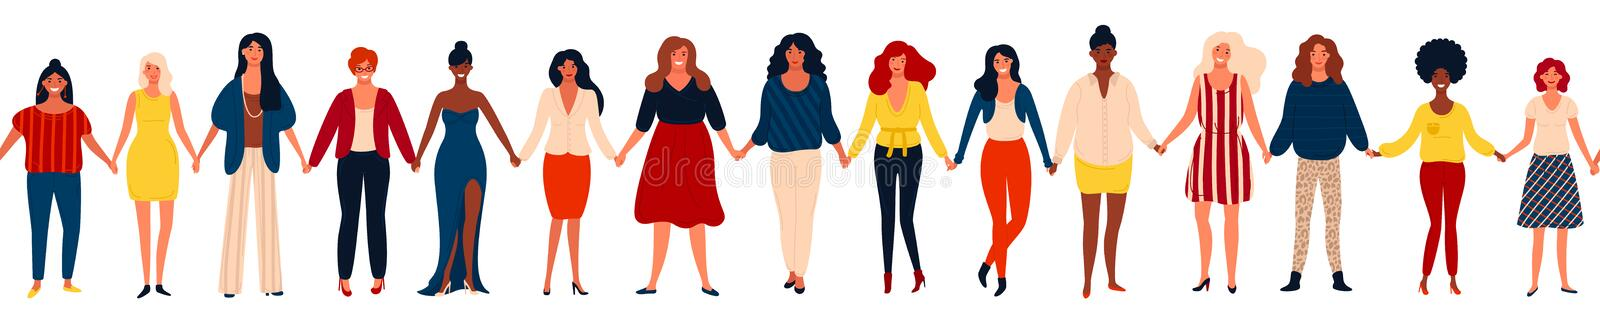 Modern seamless border with international group of happy women or girls standing together and holding hands. vector illustration